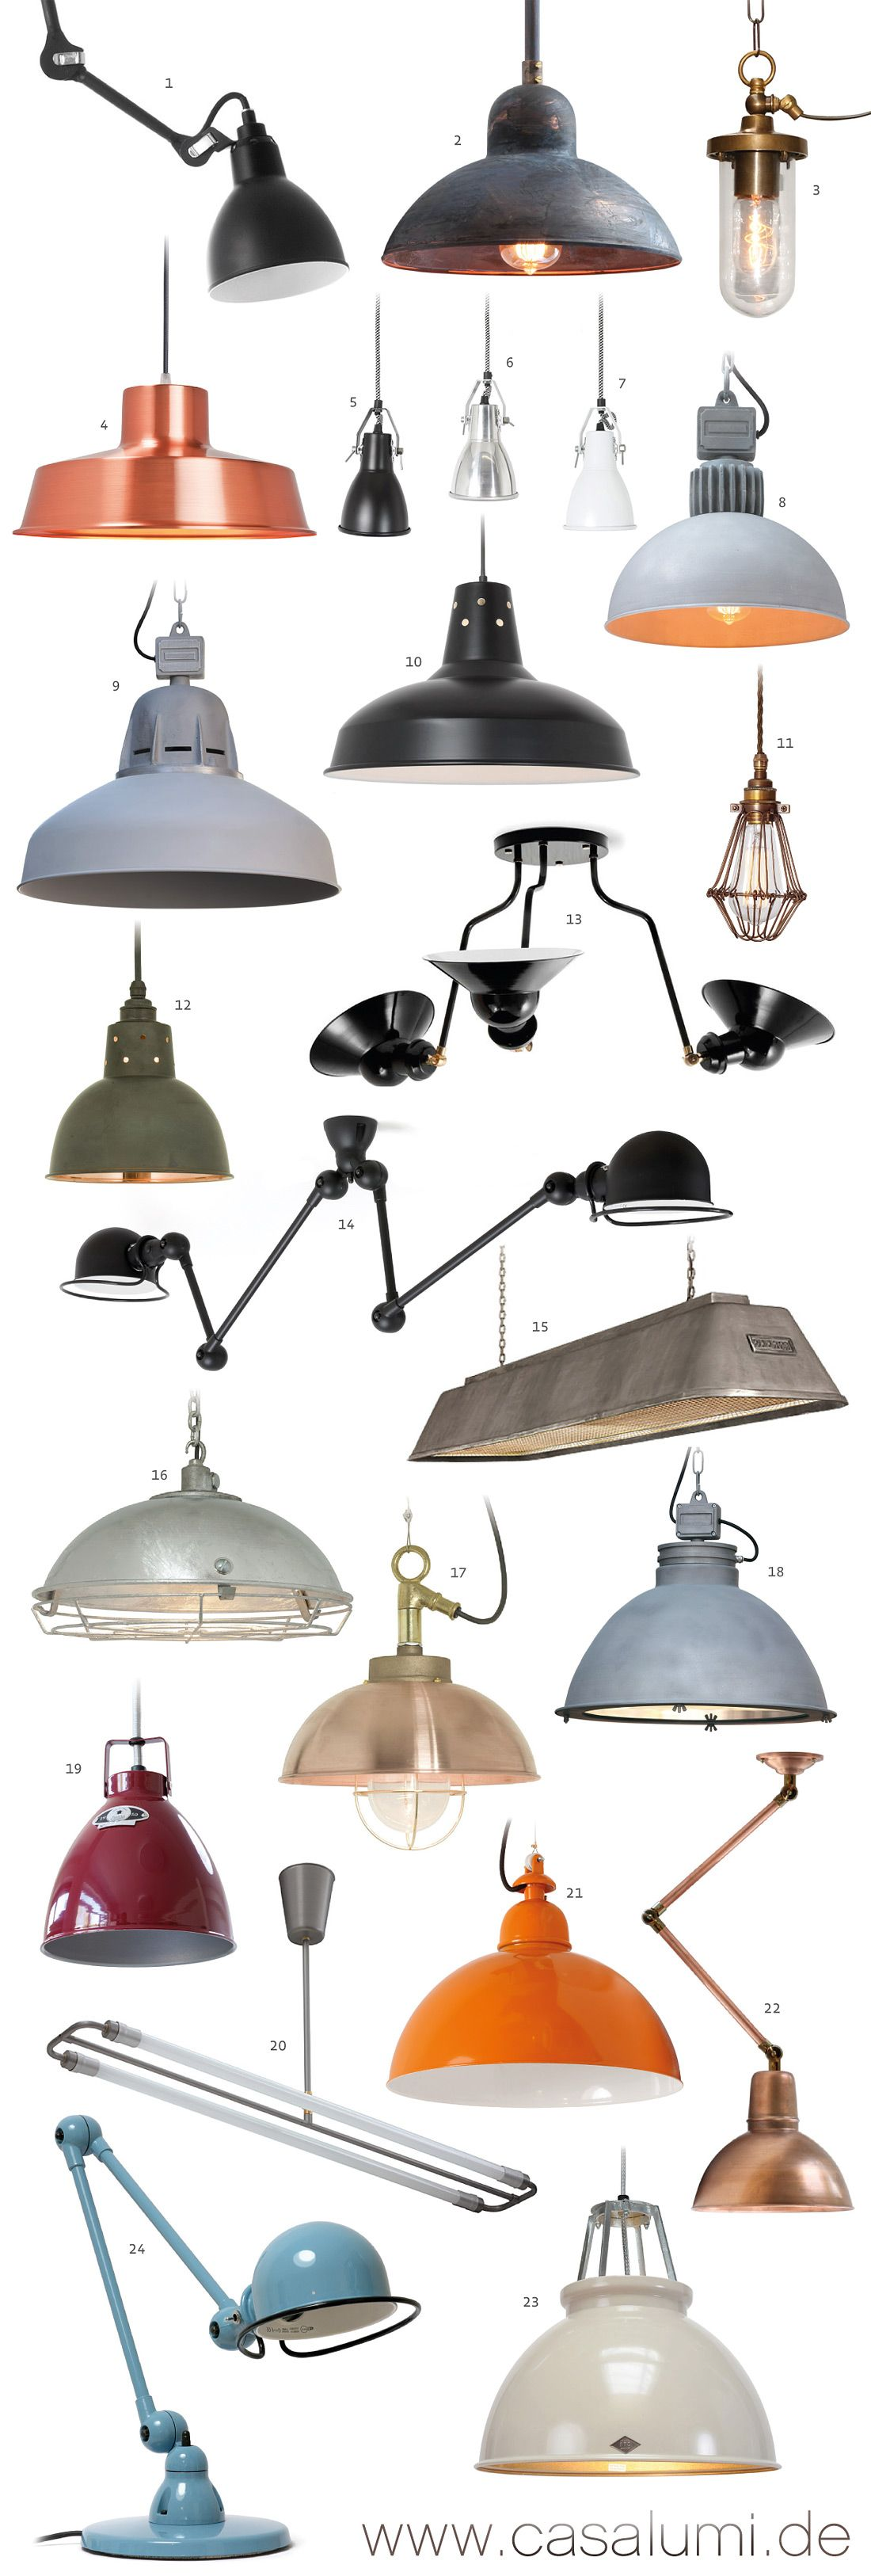 23 Industrielampen und eine Tischleuchte *  23 industrial style pendant lights and one table lamp #pendantlighting